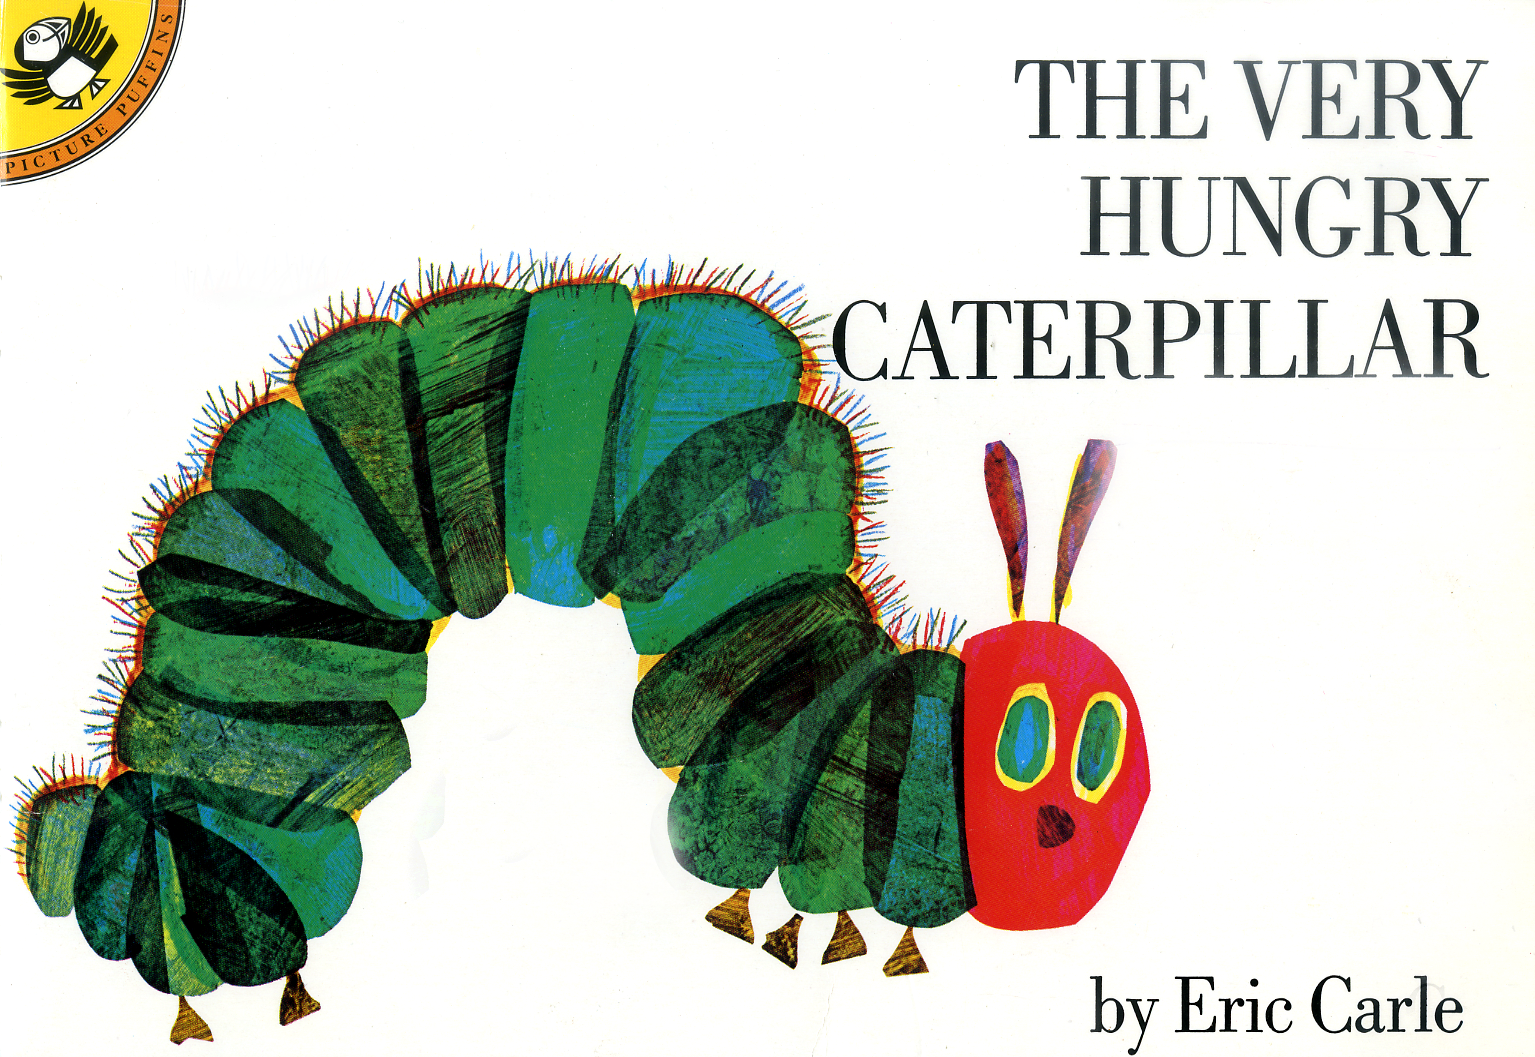 The Very Hungry Caterpillar, by Eric Carle.                                                                                                                            A cheery caterpillar nibbles his way through an assortment of colorful foods and transforms into a butterfly.                                                                                                                            Buy now: The Very Hungry Caterpillar